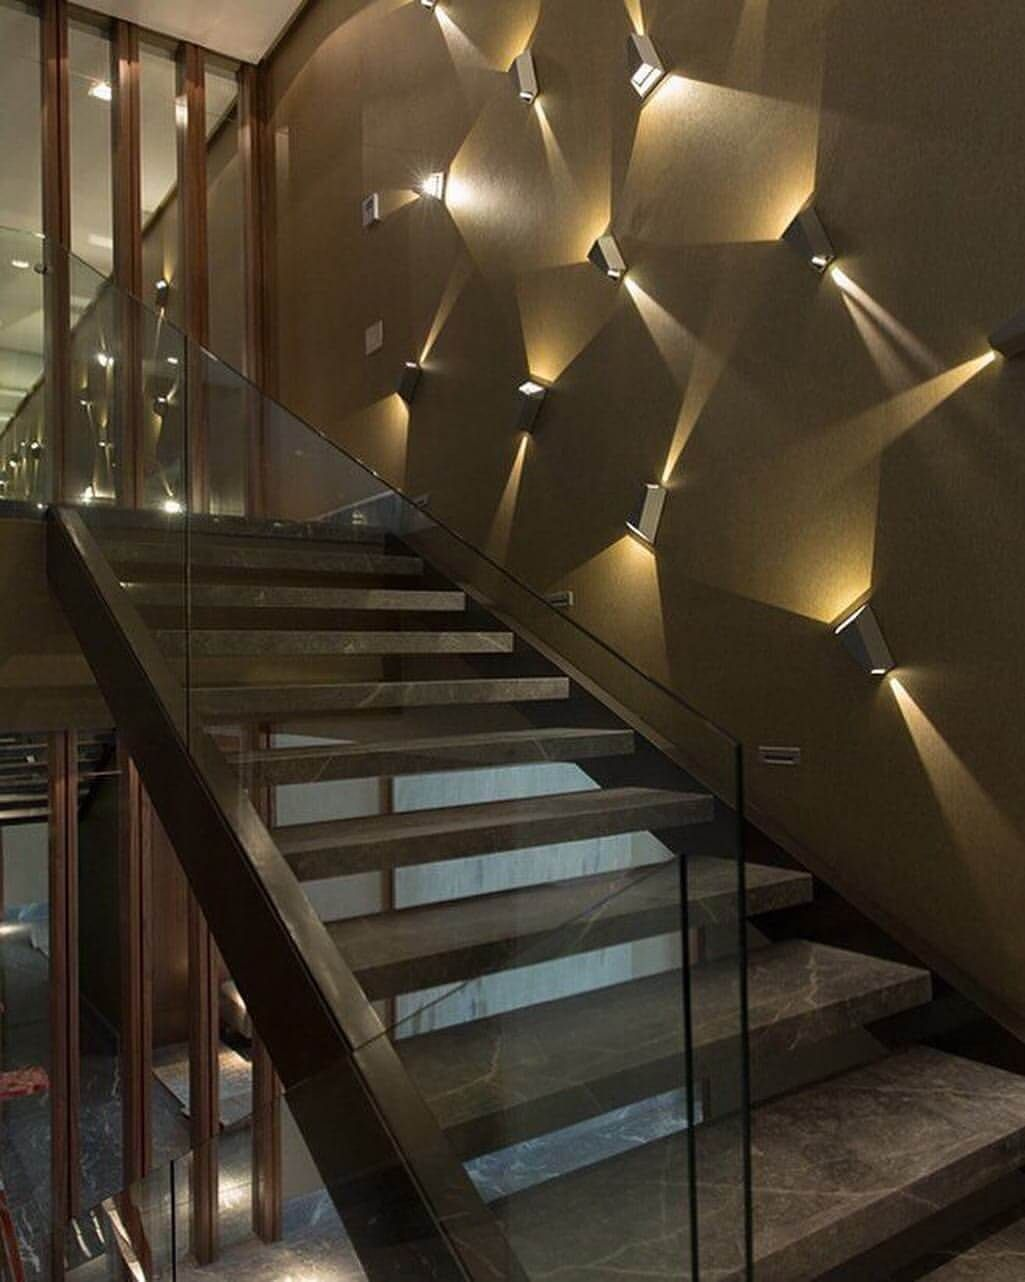 Amazing Wall Lighting Design Ideas in 2020 | Wall lighting ...